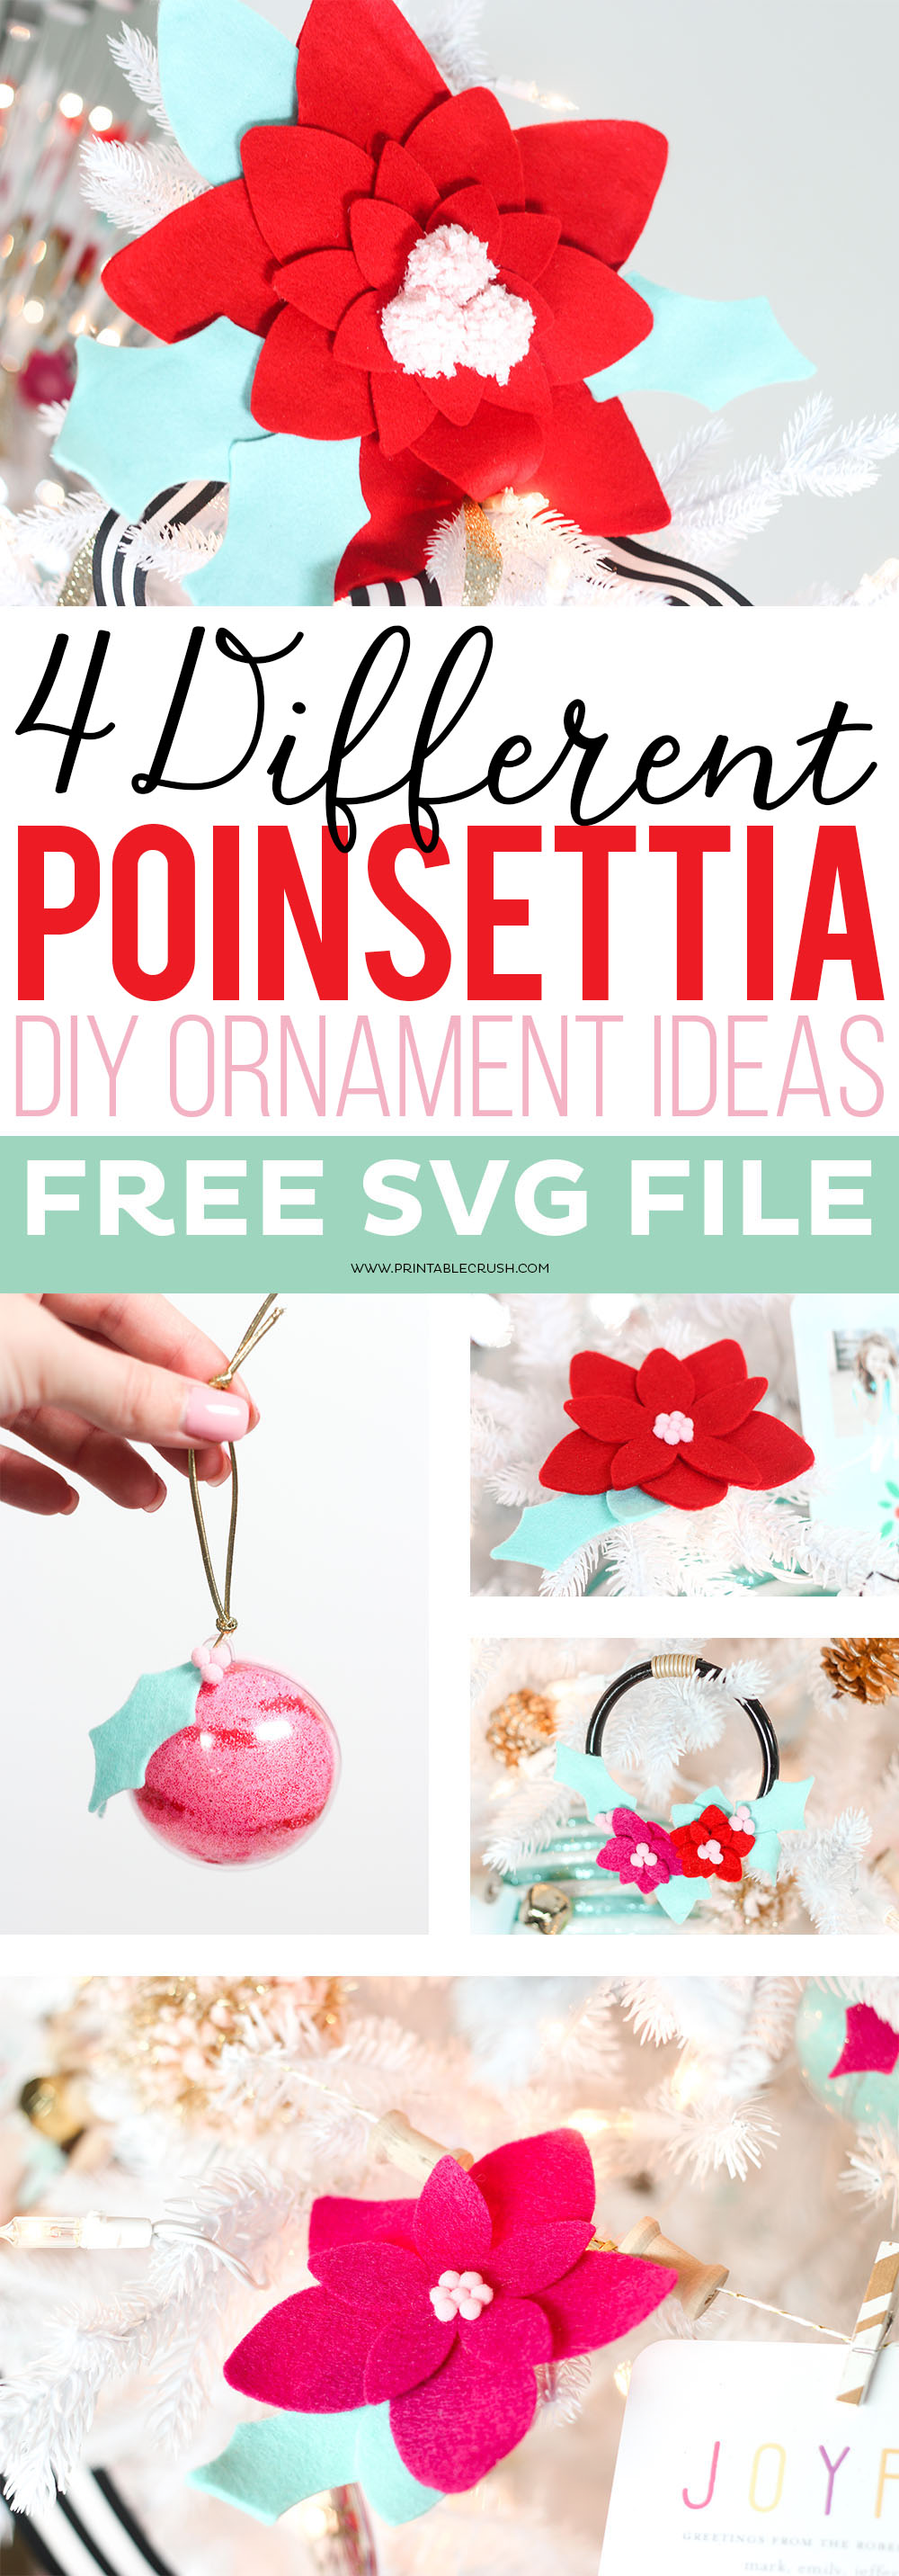 Check out this Mini Felt Wreath Ornament tutorial to make a unique and beautiful addition to your tree. I've also included 3 other Poinsettia Ornament Ideas!